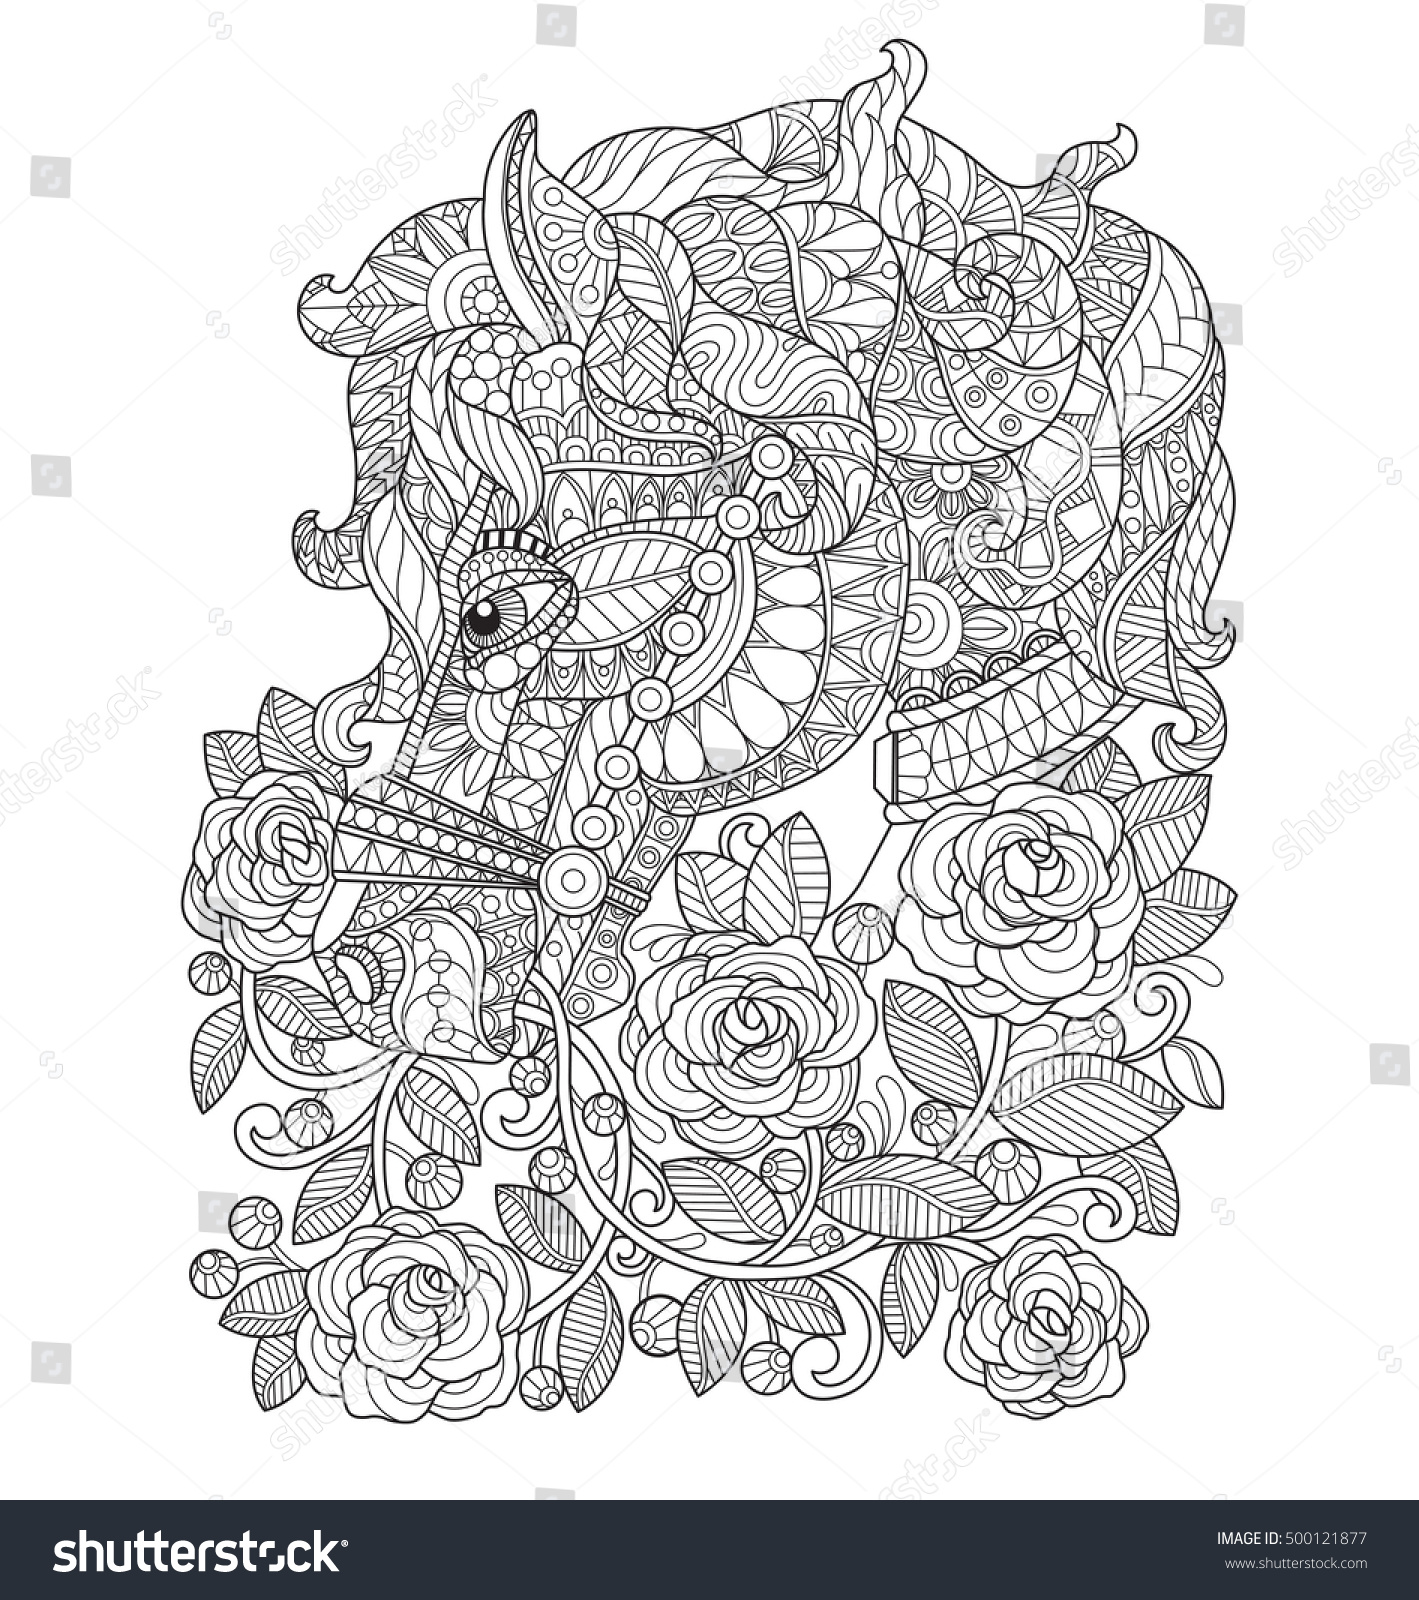 Mesmerizing Horse Rose Garden Zentangle Stylized Cartoon Stock Vector  With Entrancing Horse In The Rose Garden Zentangle Stylized Cartoon Isolated On White  Background Hand Drawn With Astounding Stone Pineapple Garden Ornament Also Busch Gardens Serengeti Safari In Addition Cat Safe Garden And Solar Garden Fairy Lights As Well As Gardening Help Additionally Dr Martens Covent Garden From Mshutterstockcom With   Entrancing Horse Rose Garden Zentangle Stylized Cartoon Stock Vector  With Astounding Horse In The Rose Garden Zentangle Stylized Cartoon Isolated On White  Background Hand Drawn And Mesmerizing Stone Pineapple Garden Ornament Also Busch Gardens Serengeti Safari In Addition Cat Safe Garden From Mshutterstockcom